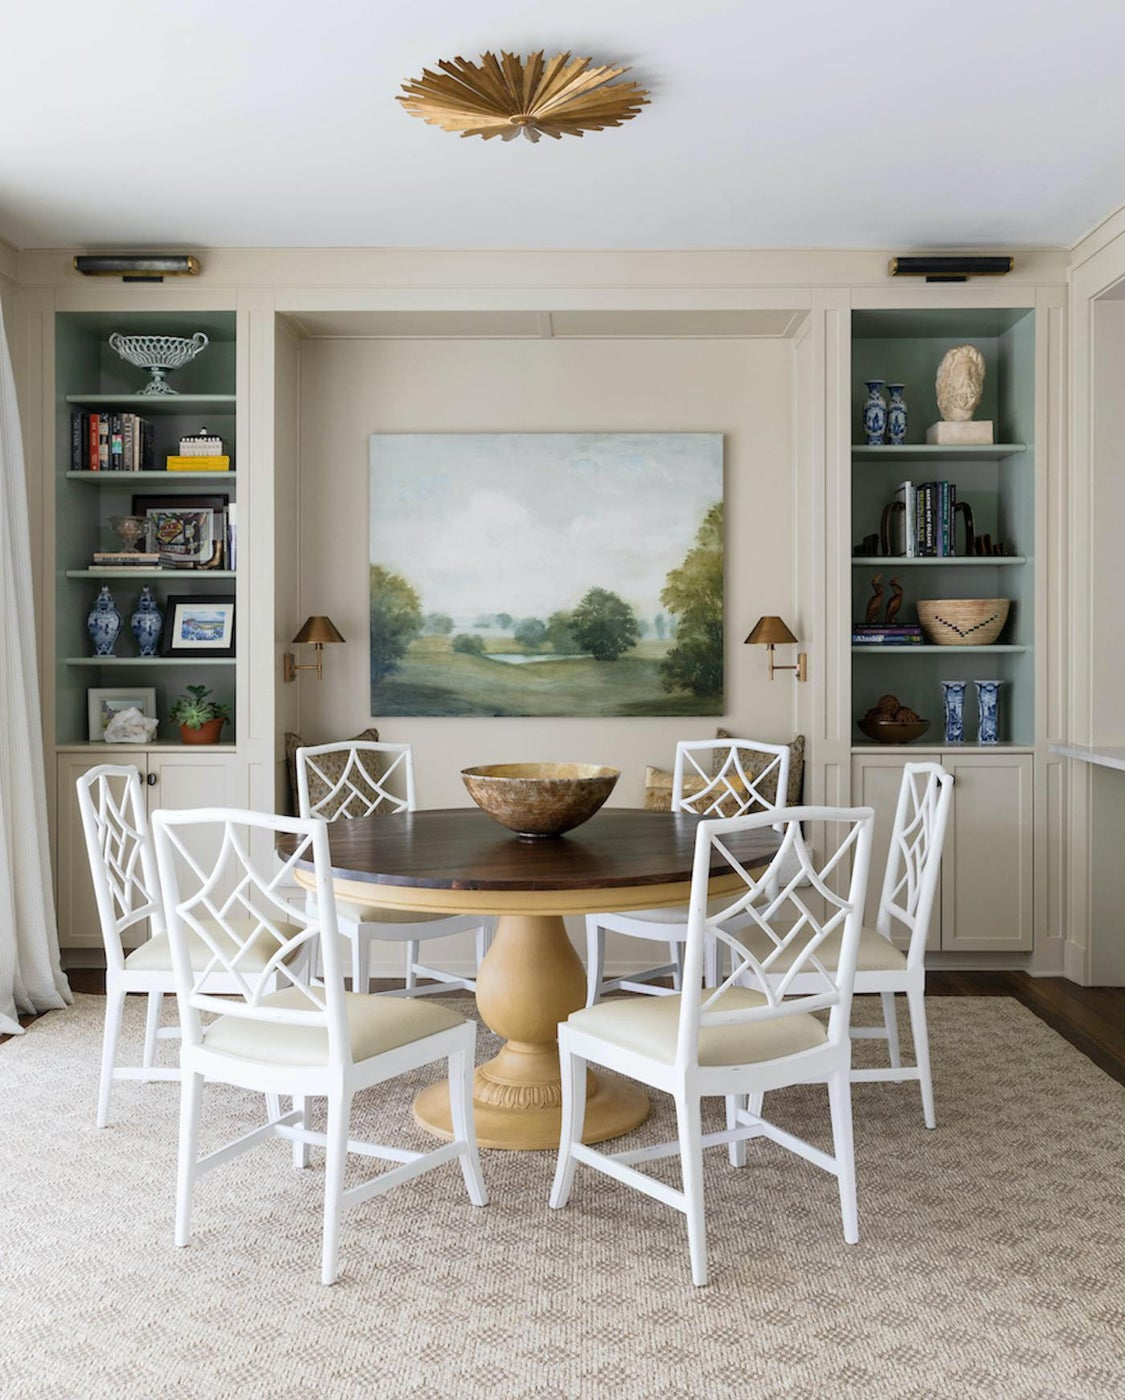 Elegant breakfast nook showcases art and collections